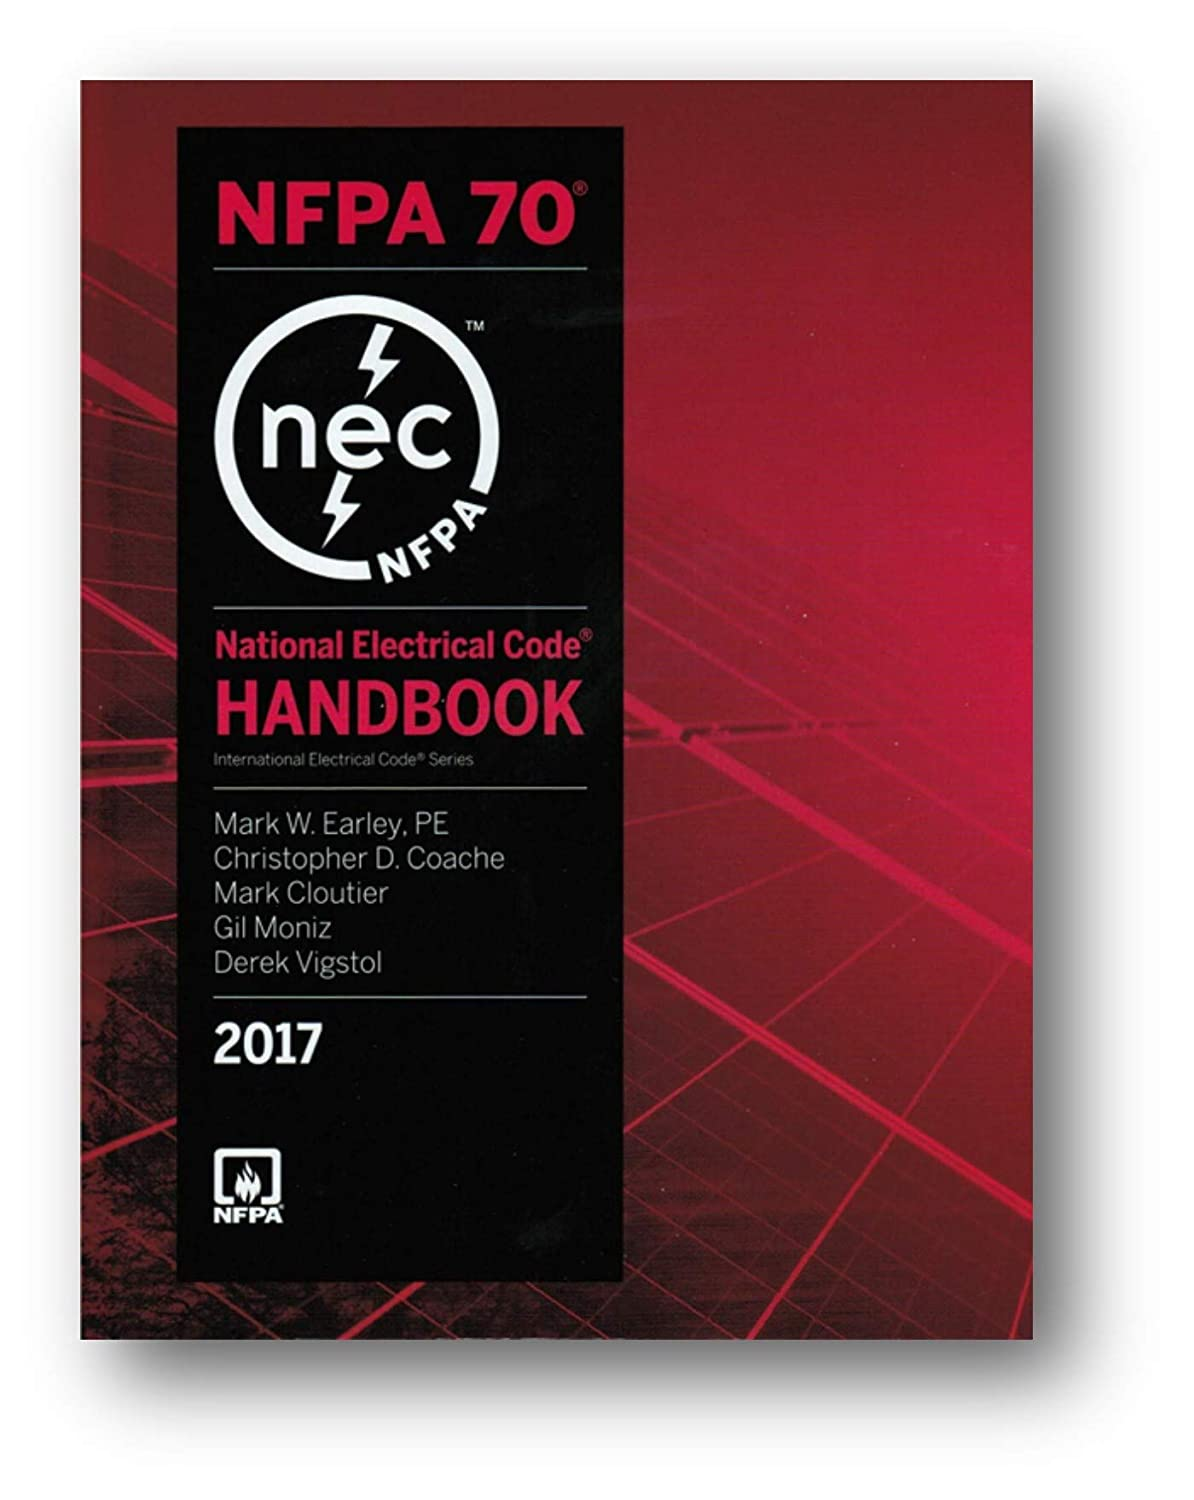 NFPA 70 National Electrical Code, NEC, Handbook (Hardcover) 2017 Edition 41VkqI5p70L